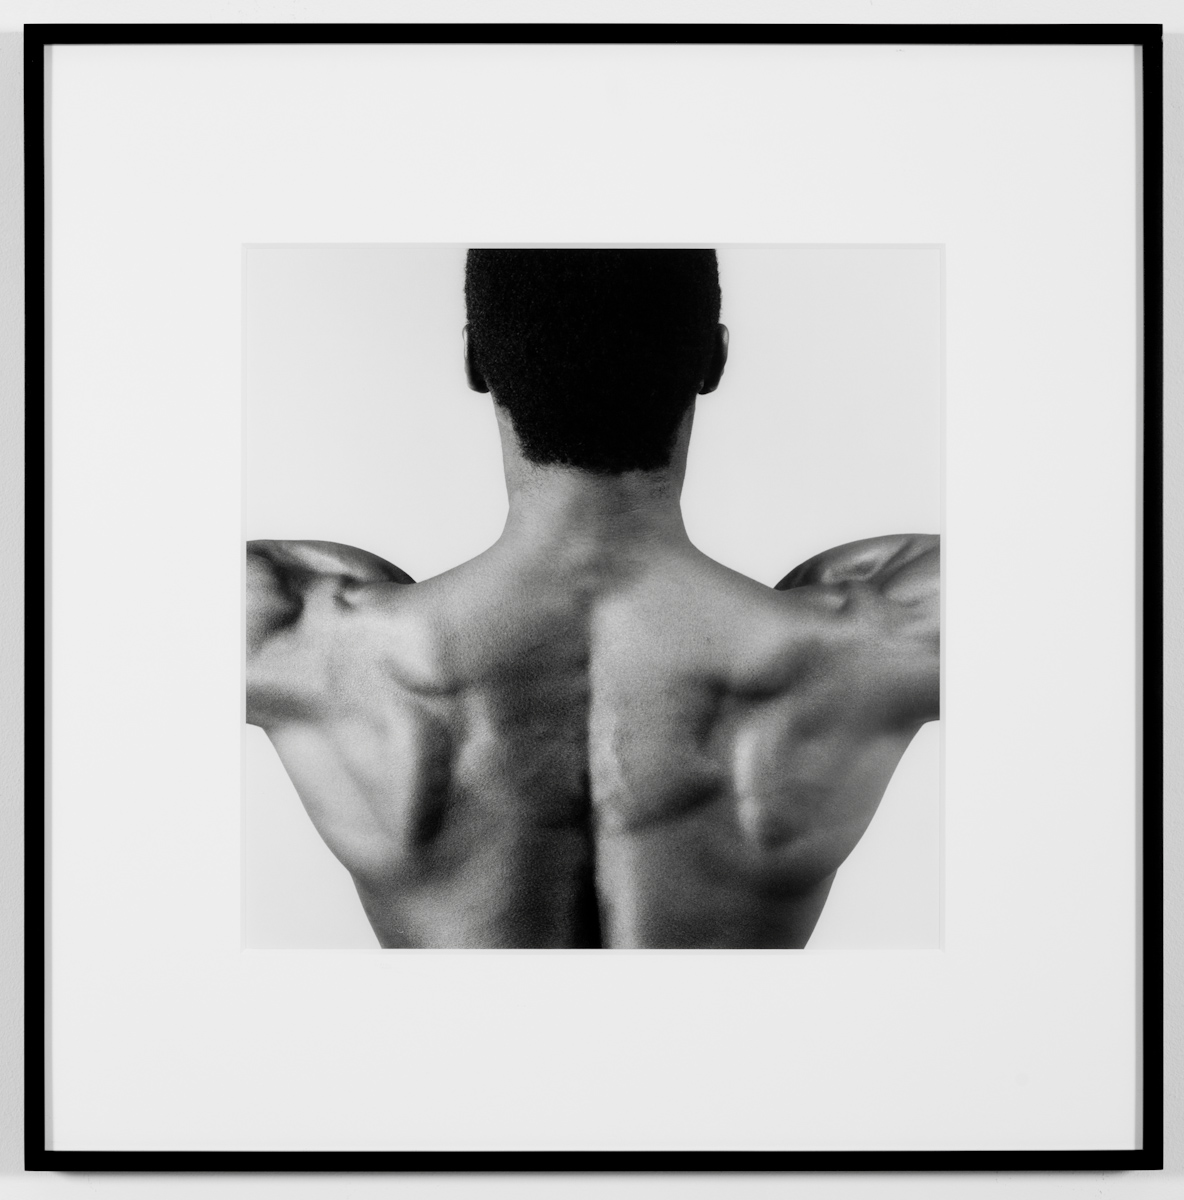 Robert Mapplethorpe, Derrick Cross